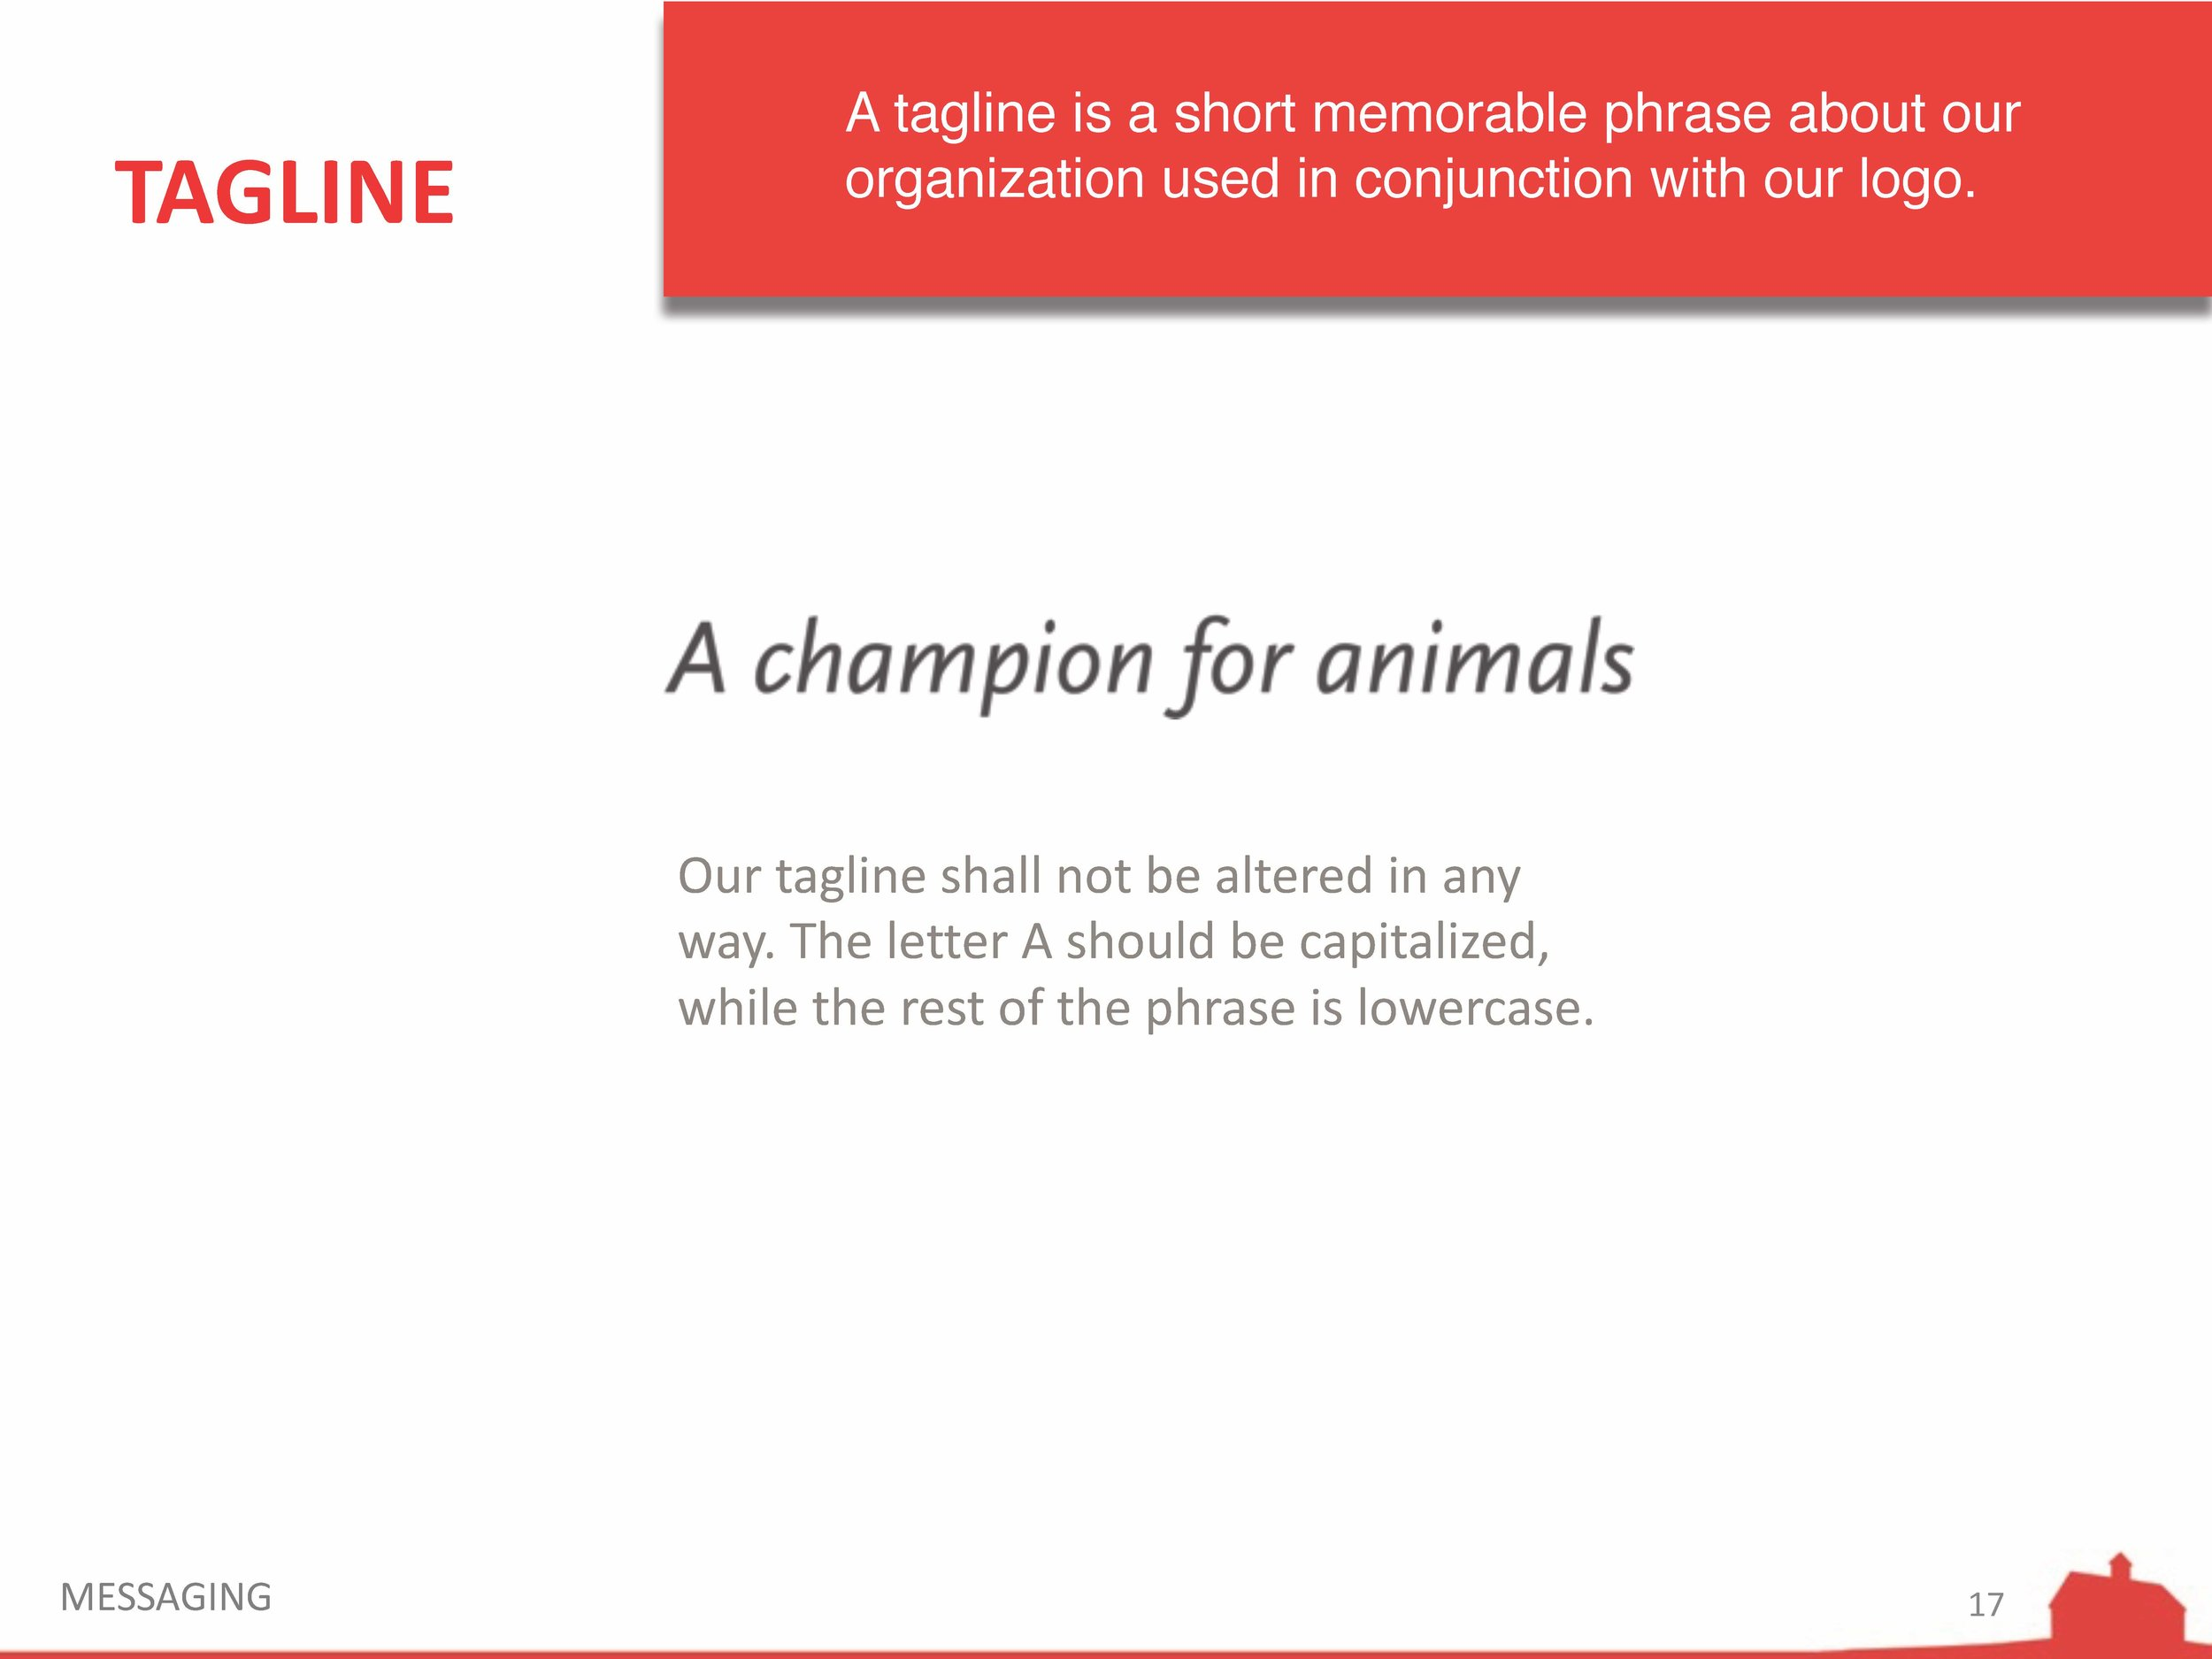 Branding and Messaging Manual (1)_Page_17.jpg